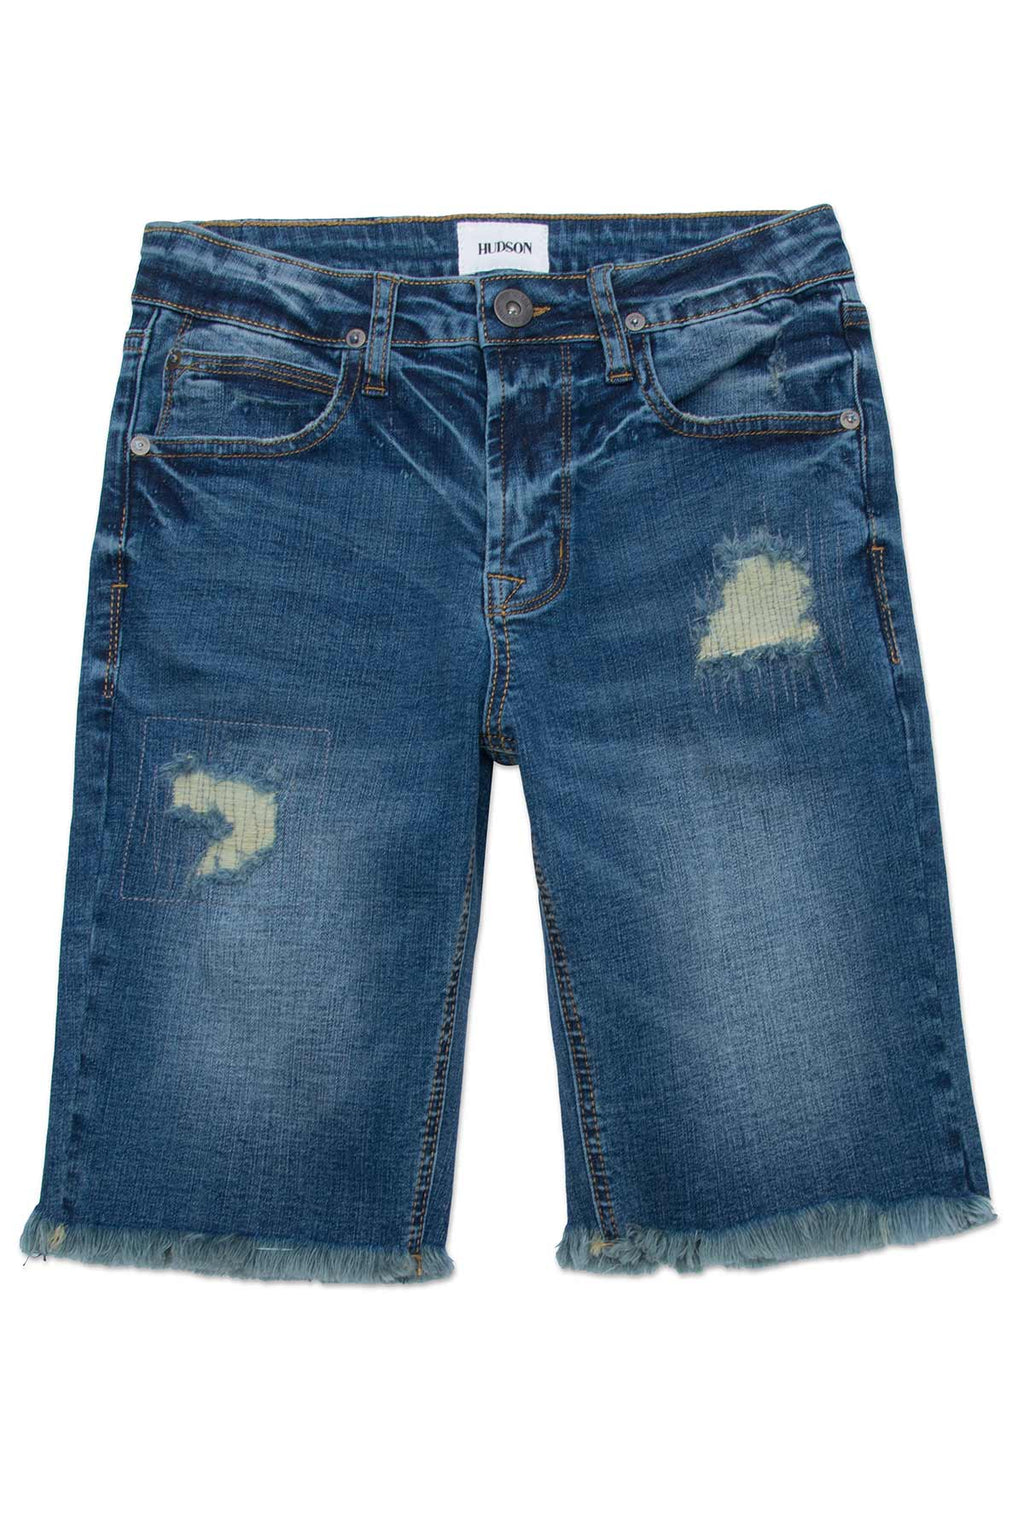 BIG BOYS REPAIRED SHORT, SIZES 8-18 - HEAVY DESTROYED - Image 1